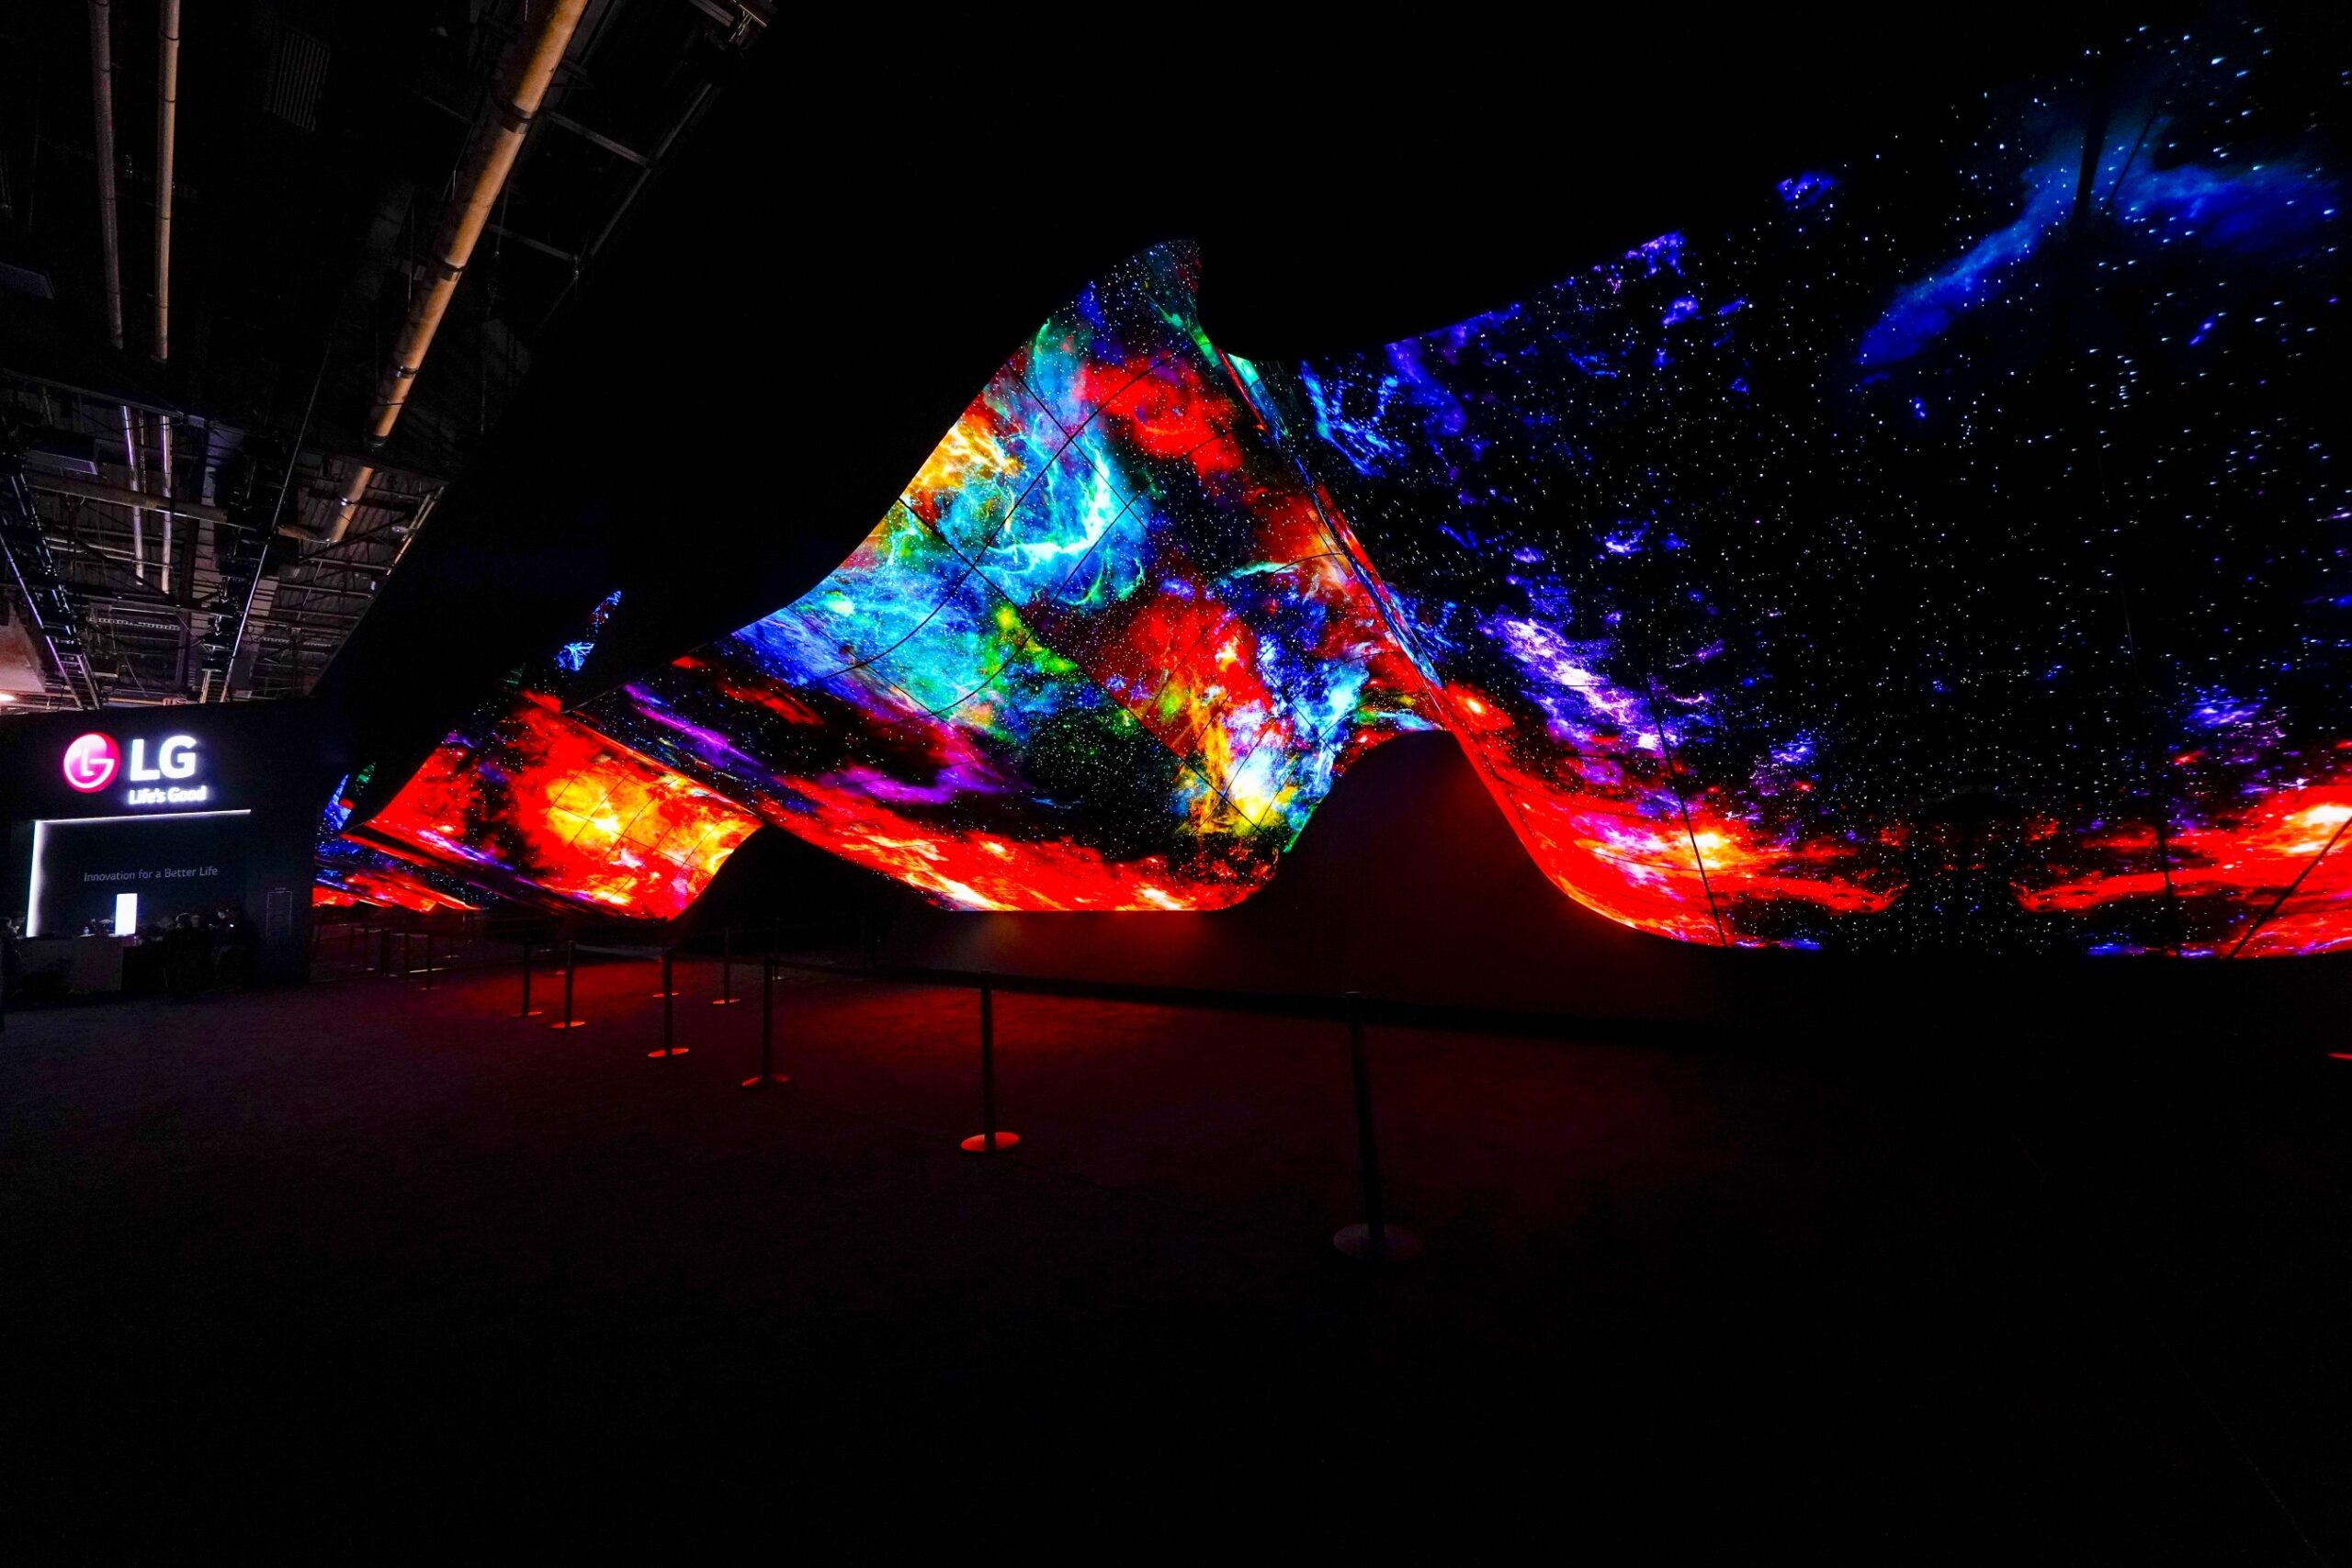 A wide-angle view of CES 2020's LG OLED Wave perfectly displaying the vastness and mystery of deep space via its sharp and colorful images